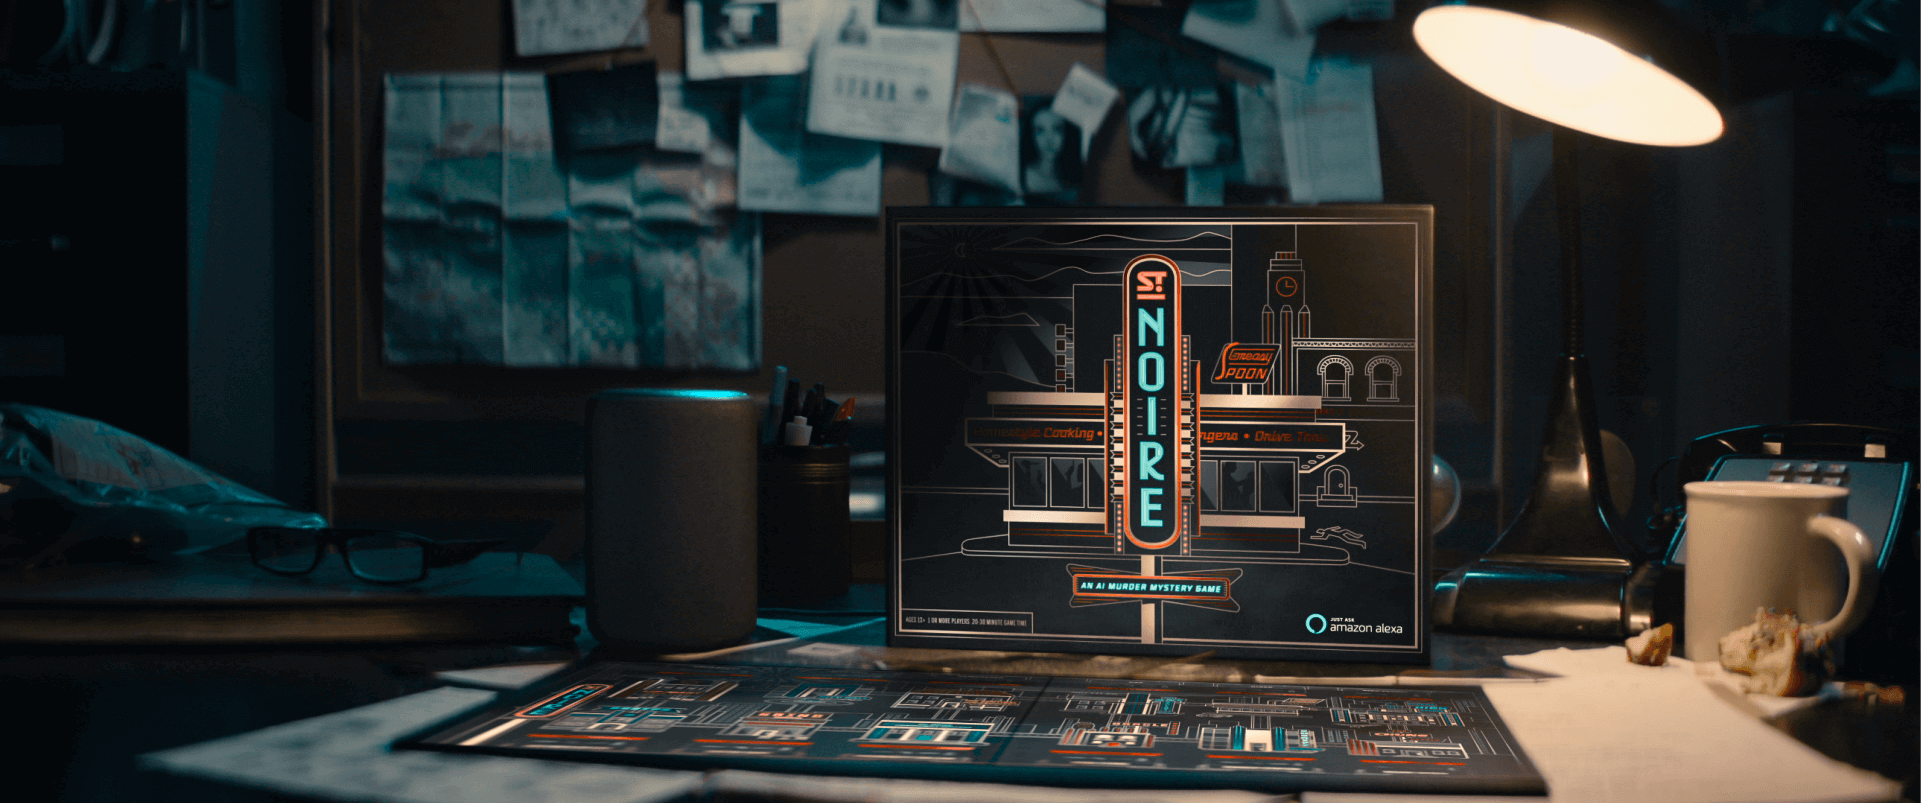 St. Noire is a murder mystery board game driven by Alexa